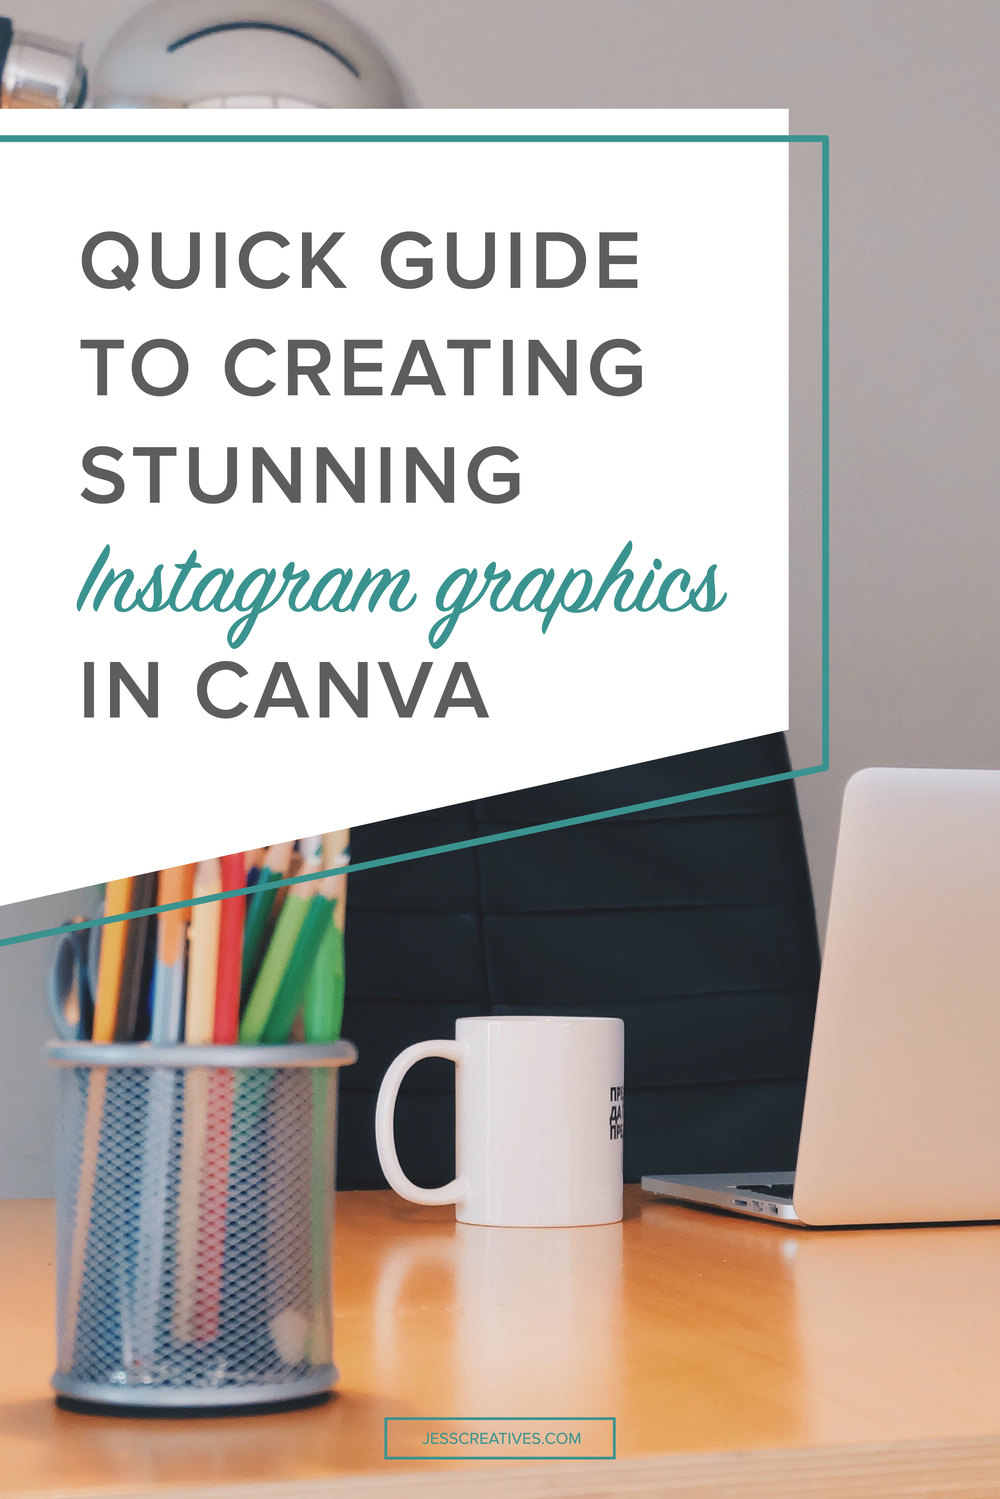 I know not everyone can afford to pay a designer to create Instagram graphics for their business. Lucky for you, there are great free tools out there to create social media graphics! Obviously, as a professional, I don't use these tools, but I want to give you a quick walk-through on how to create better Instagram graphics.